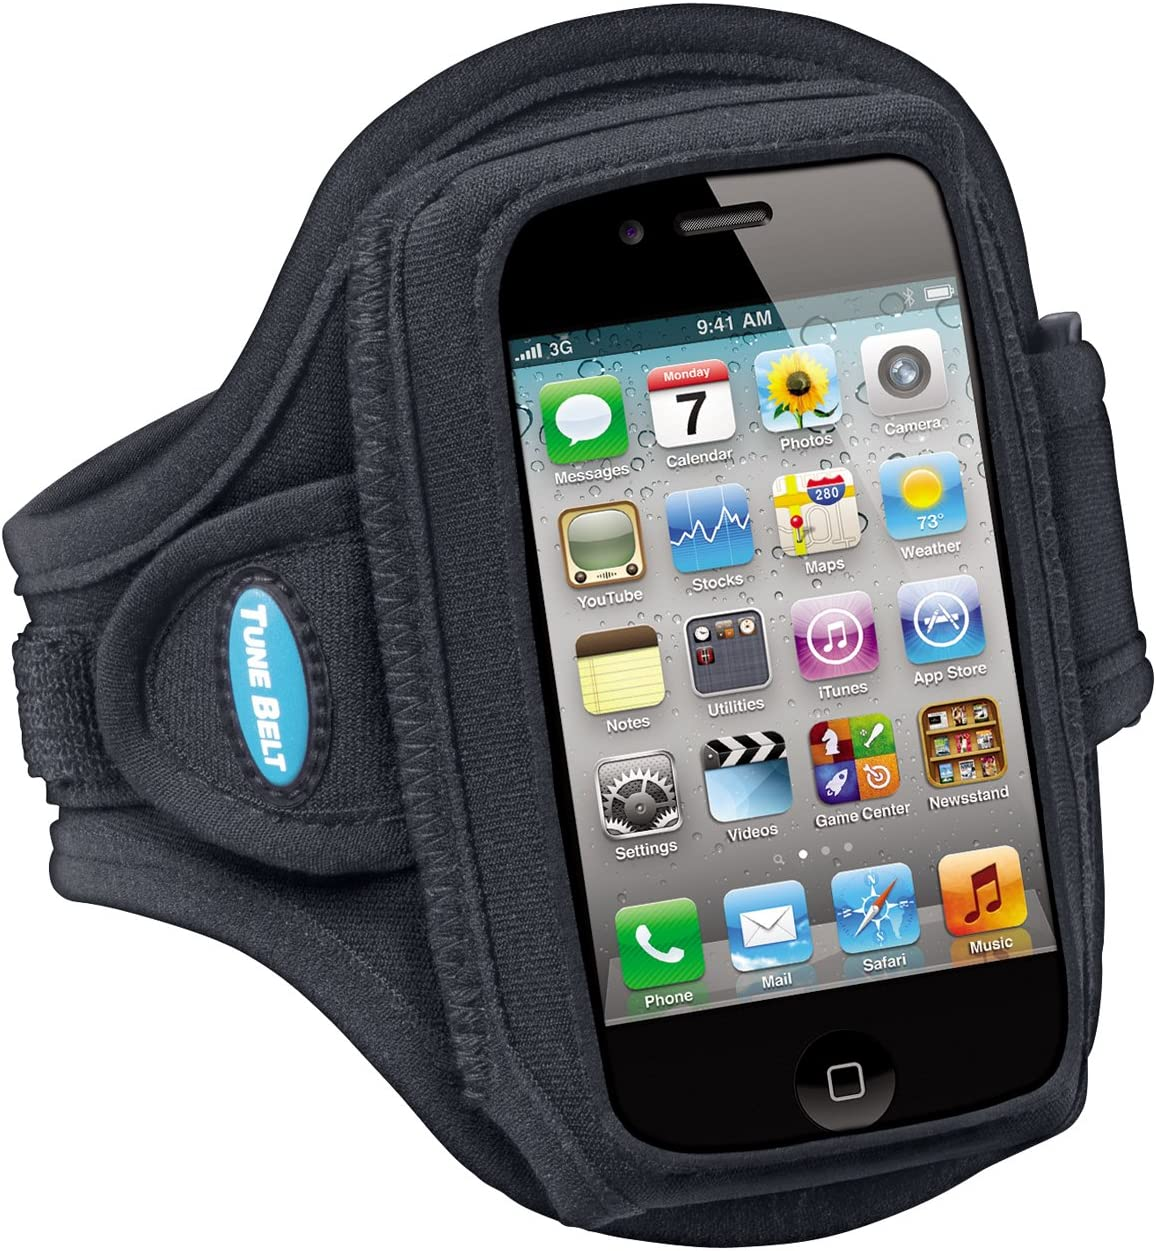 Tune Belt Armband for iPhone 4 4S 3G 3GS, iPod Classic (All gens) and iPod Touch (First – Fourth Generation)